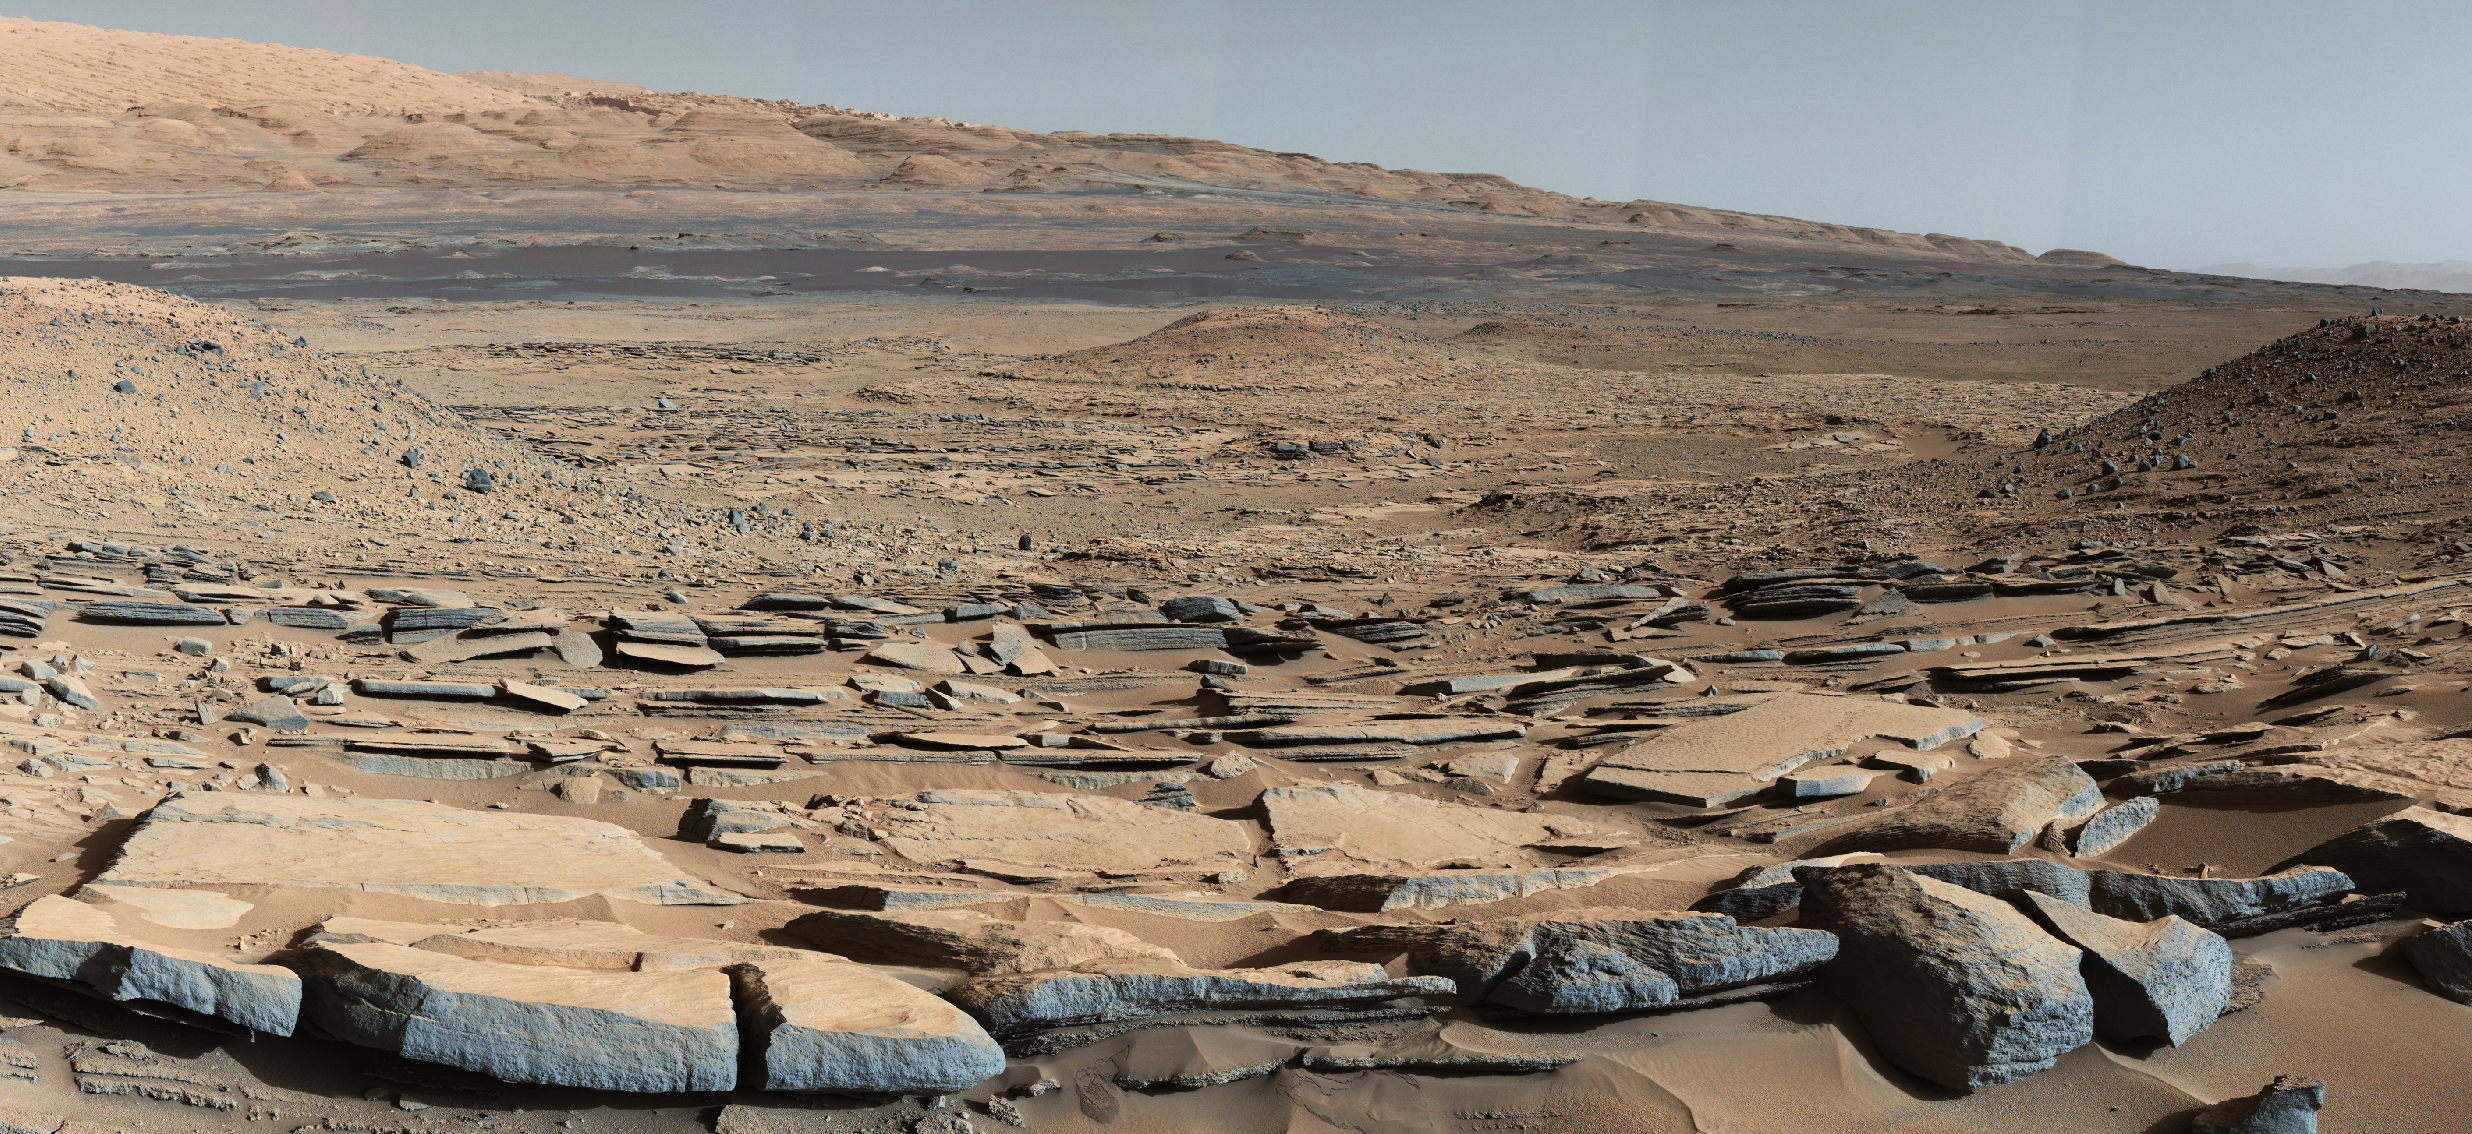 This image released on Oct. 8, 2015 shows a view from the  Kimberley  formation on Mars taken by NASA's Curiosity rover. The strata in the foreground dip towards the base of Mount Sharp, indicating flow of water toward a basin that existed before the larger bulk of the mountain formed.